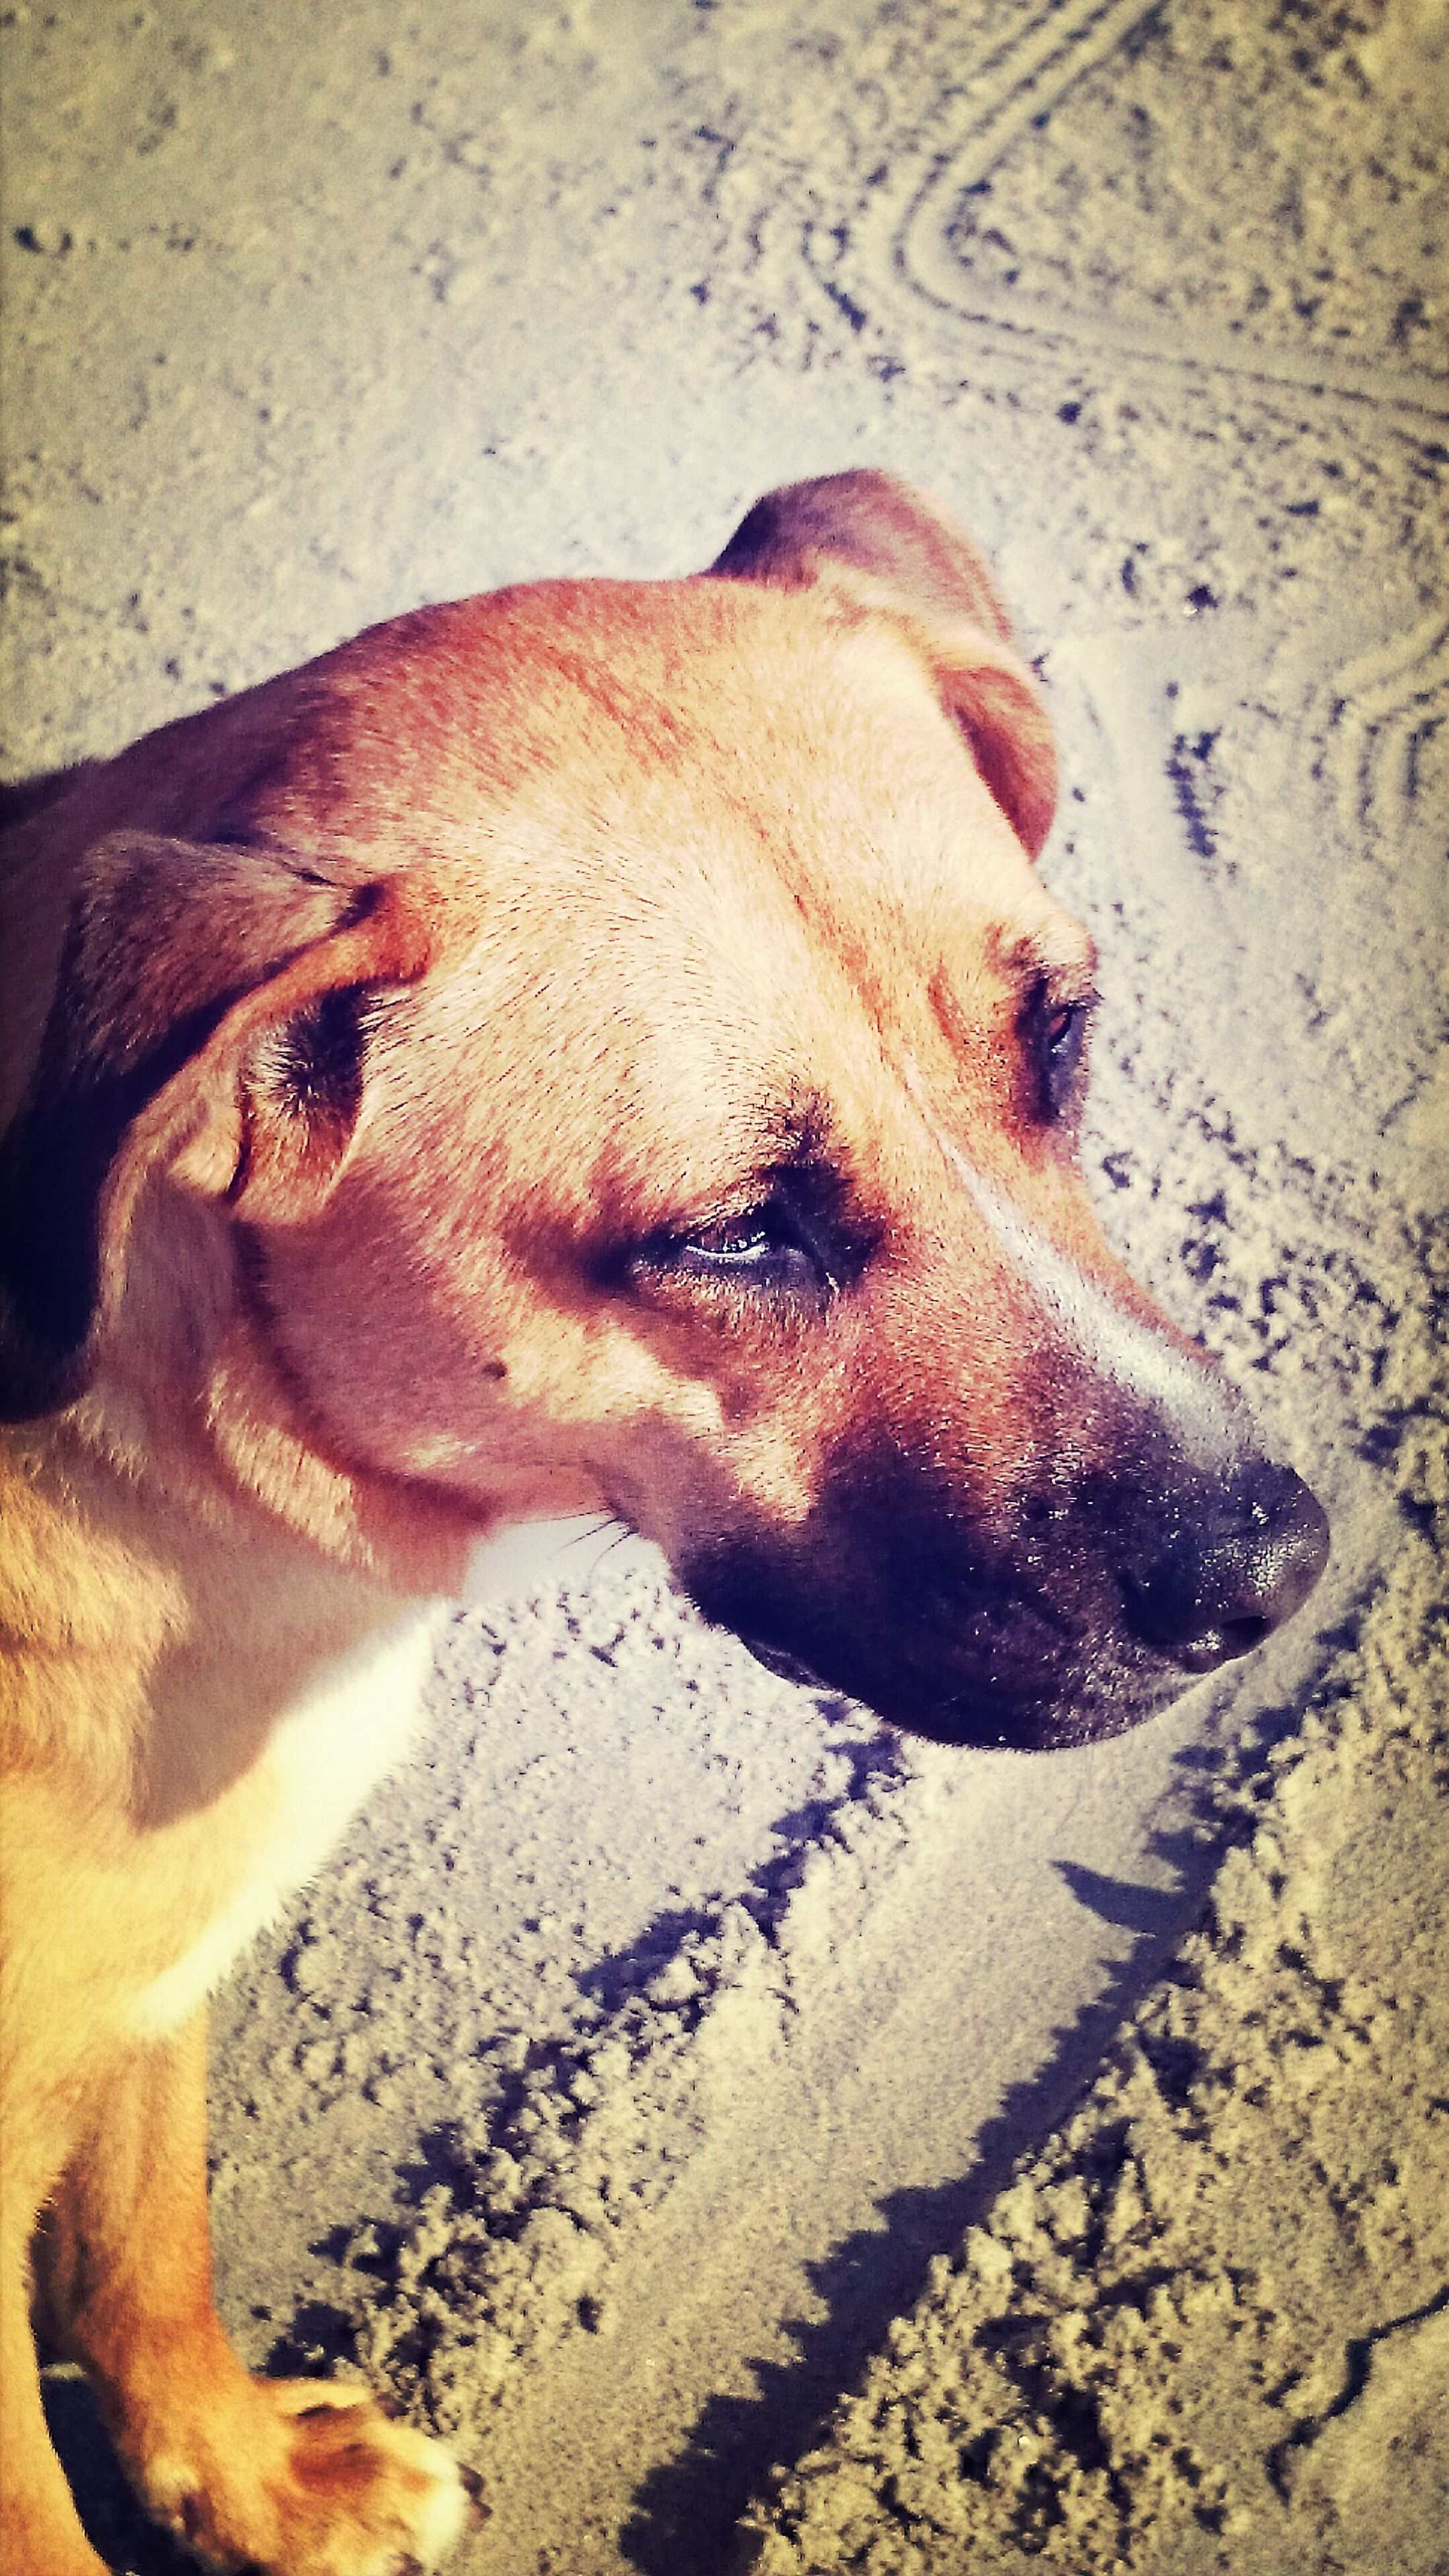 high angle view, close-up, lifestyles, dog, sunlight, shadow, sand, leisure activity, portrait, day, headshot, indoors, part of, street, looking at camera, domestic animals